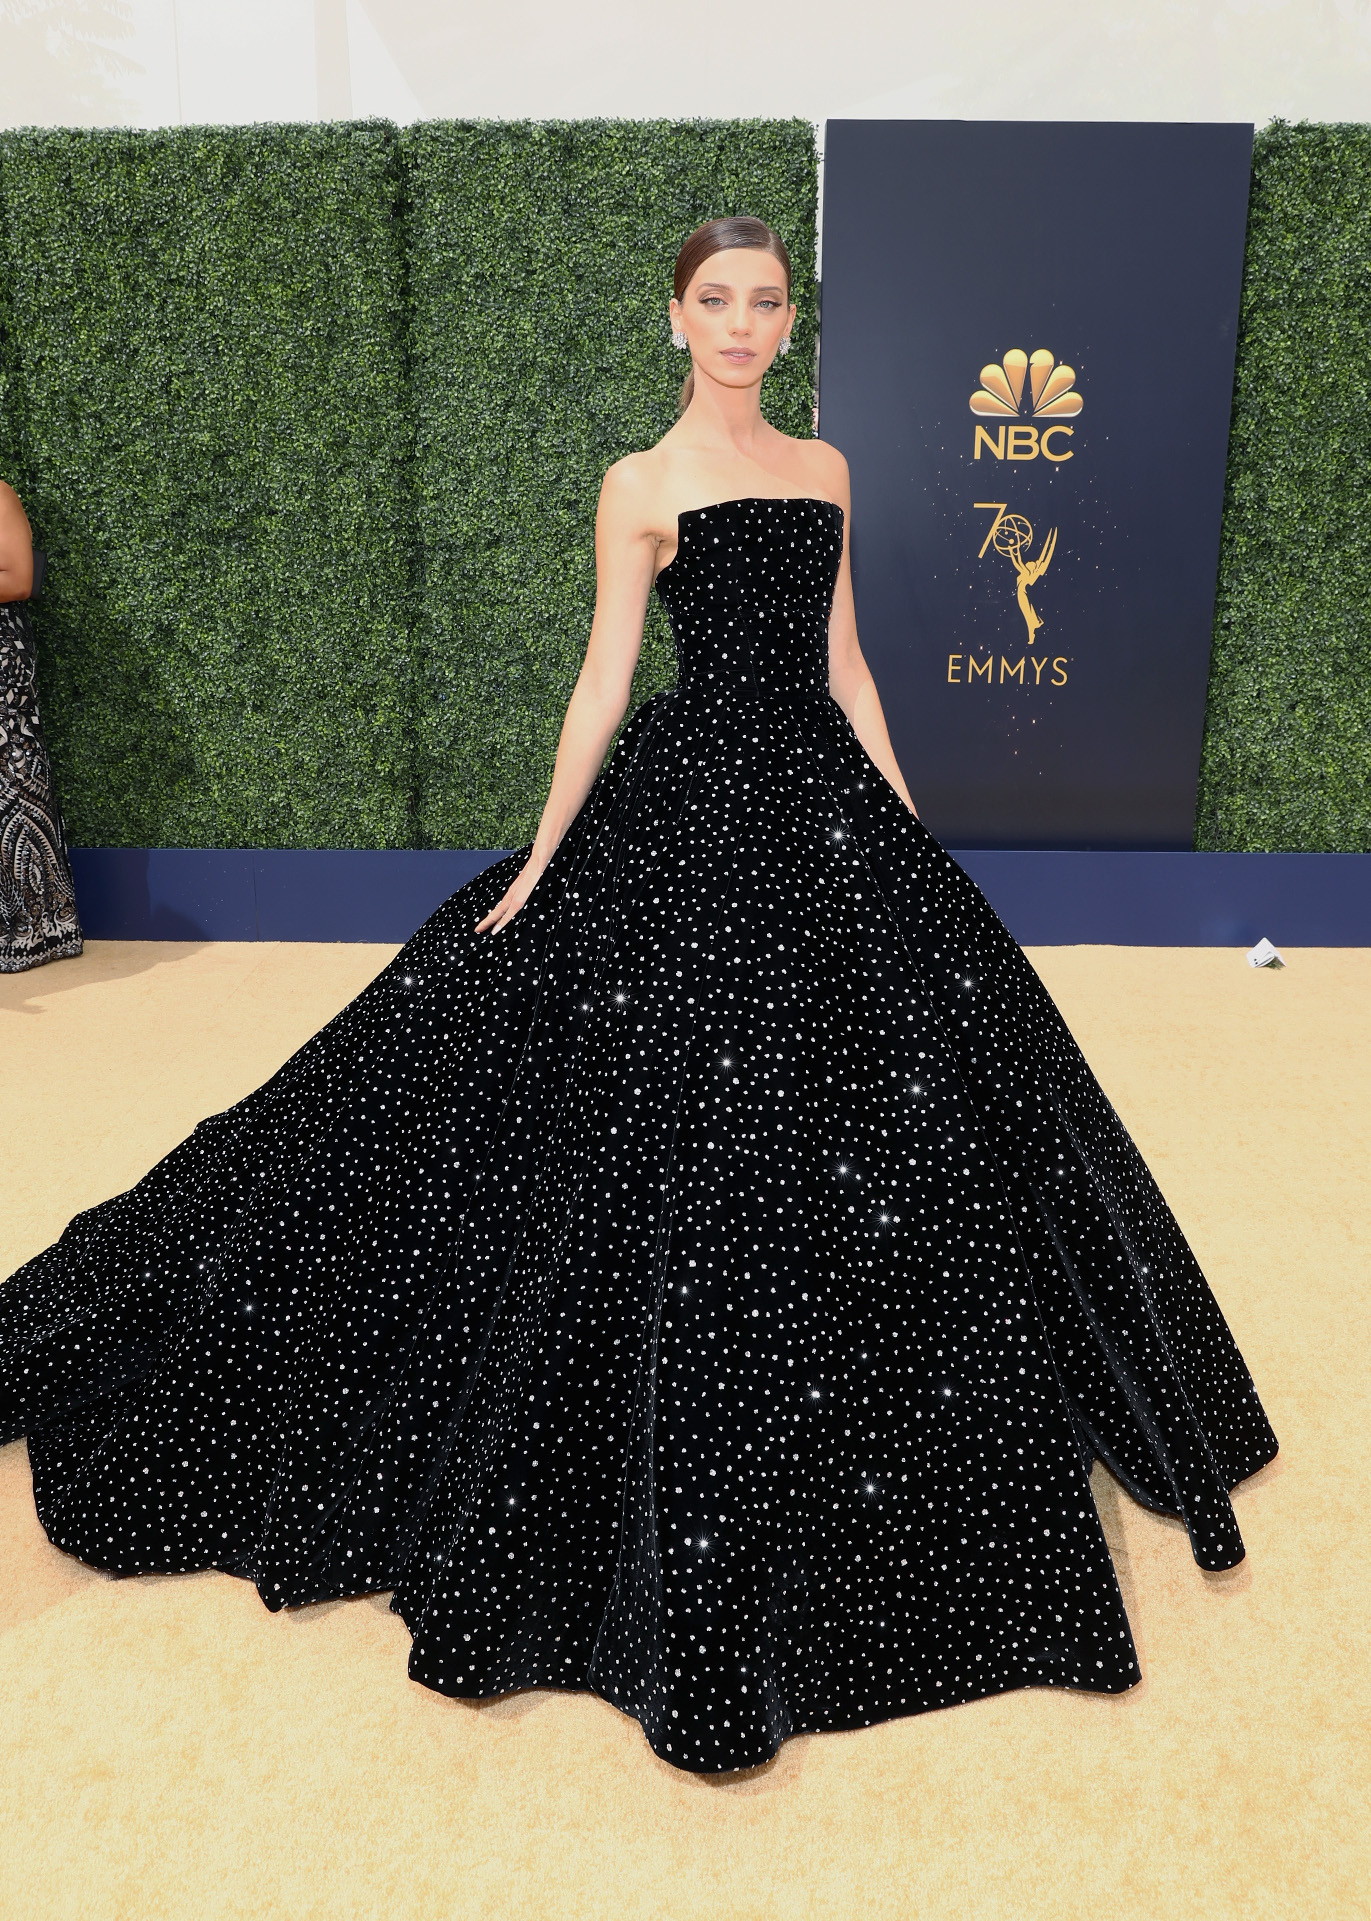 LOS ANGELES, CA - SEPTEMBER 17:  Actor Angela Sarafyan attends the 70th Annual Primetime Emmy Awards at Microsoft Theater on September 17, 2018 in Los Angeles, California. (Photo by Rich Polk/Getty Images for IMDb)